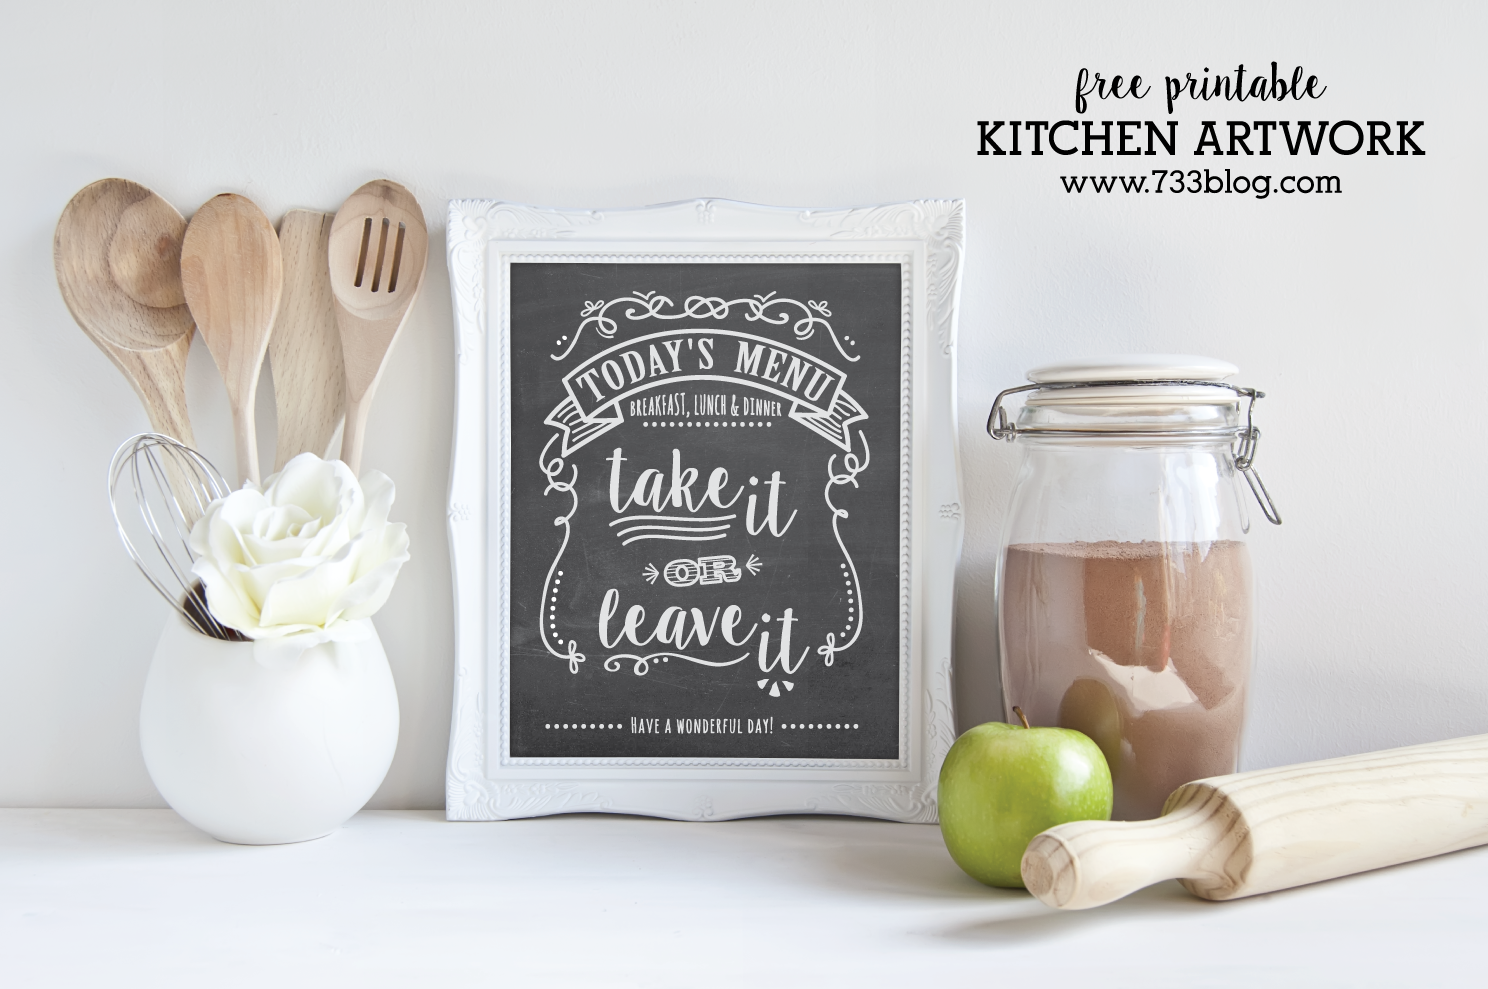 """Today's Menu - Take It or Leave It!"" Printable Chalkboard Art"